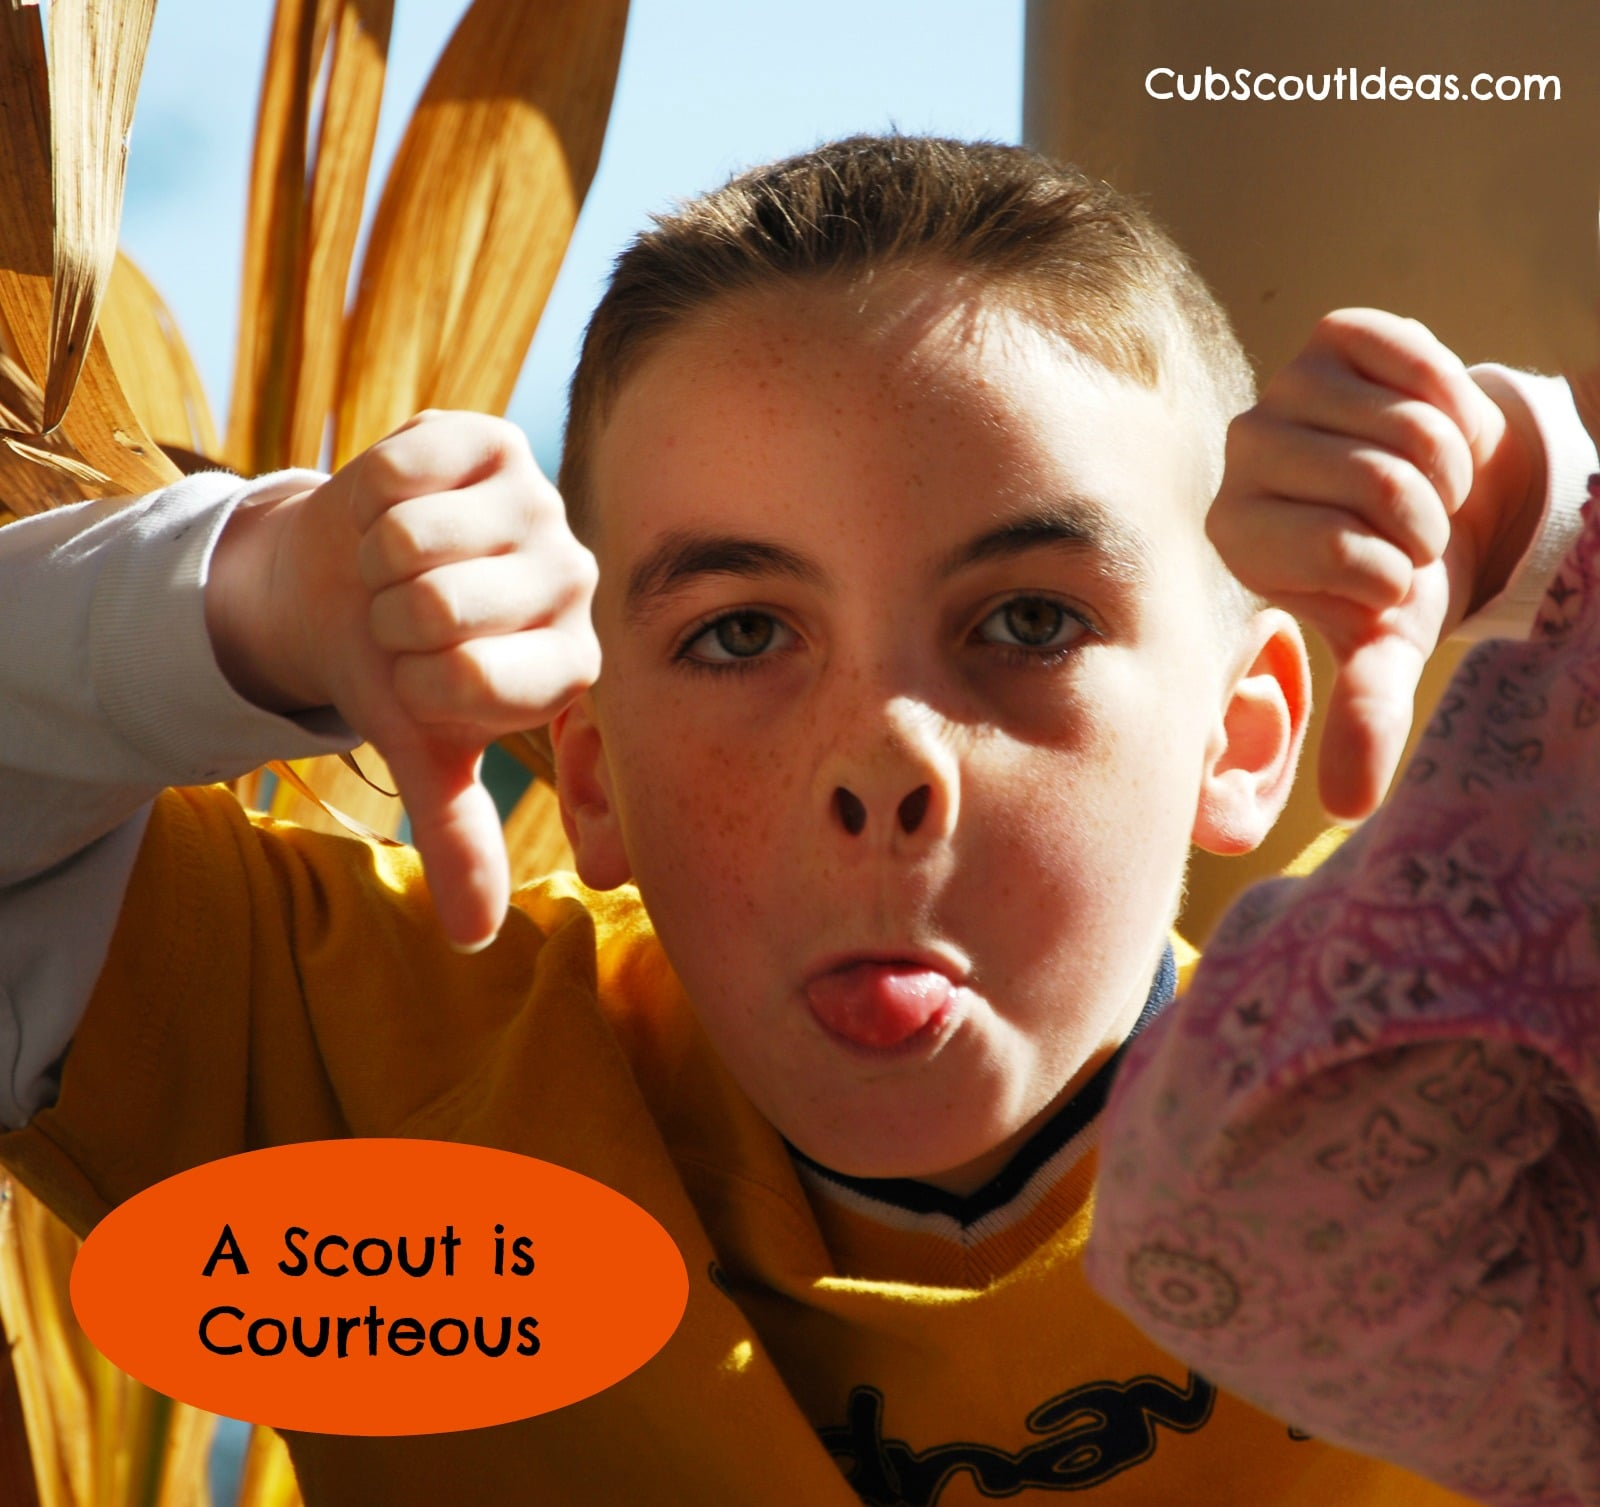 cub scout a scout is courteous